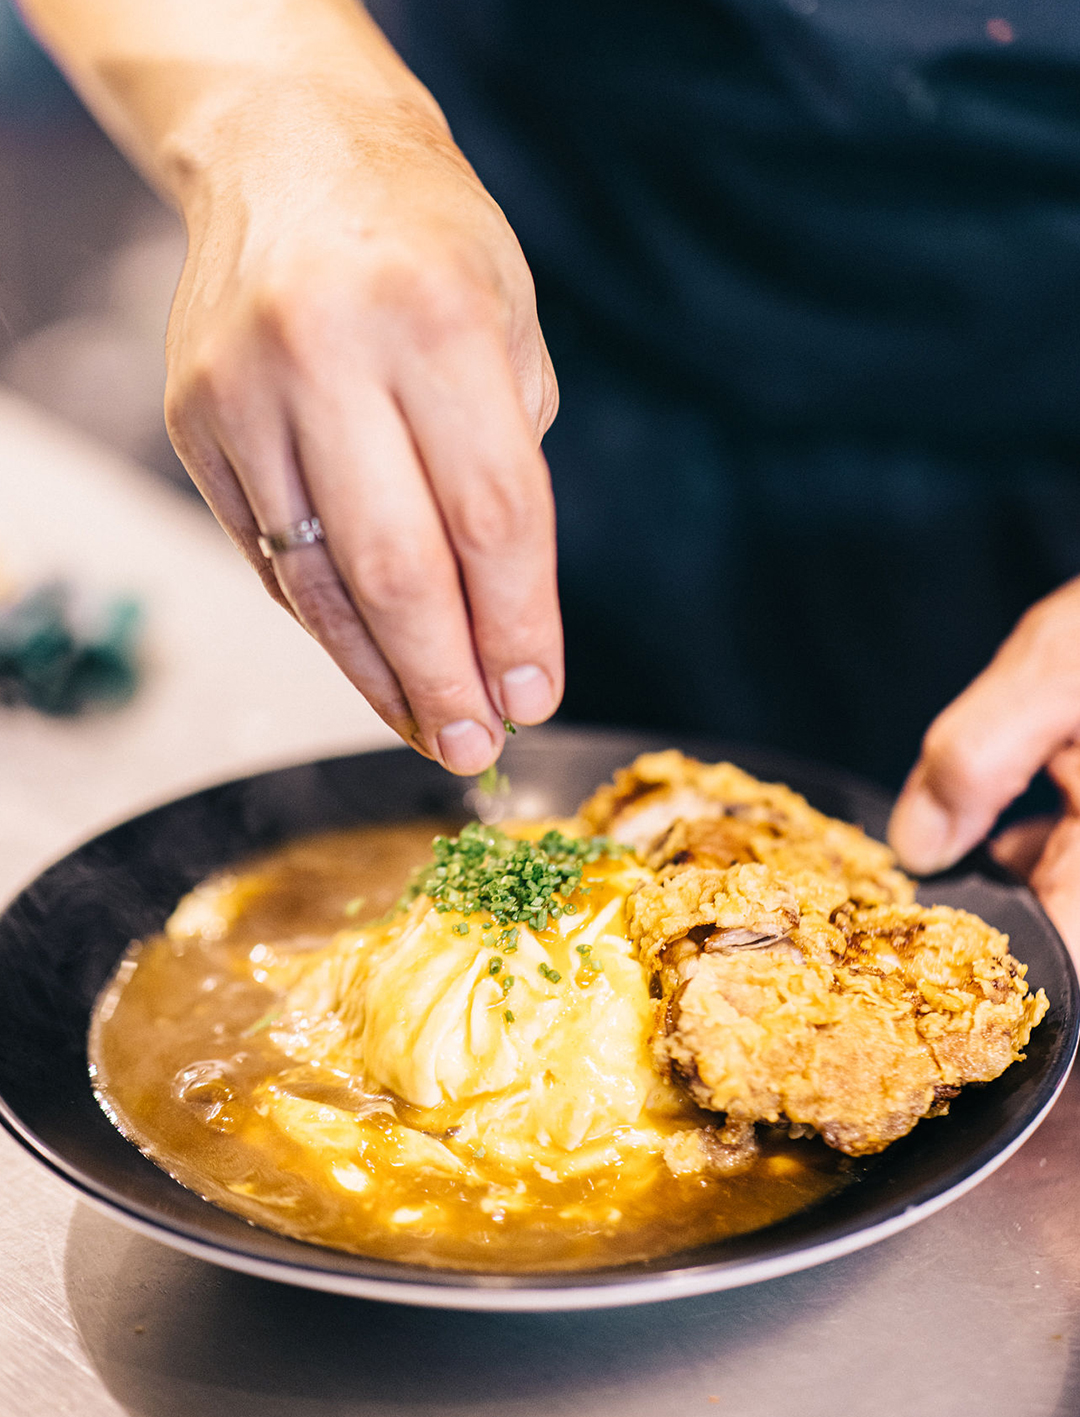 hands mixing omurice in bowl